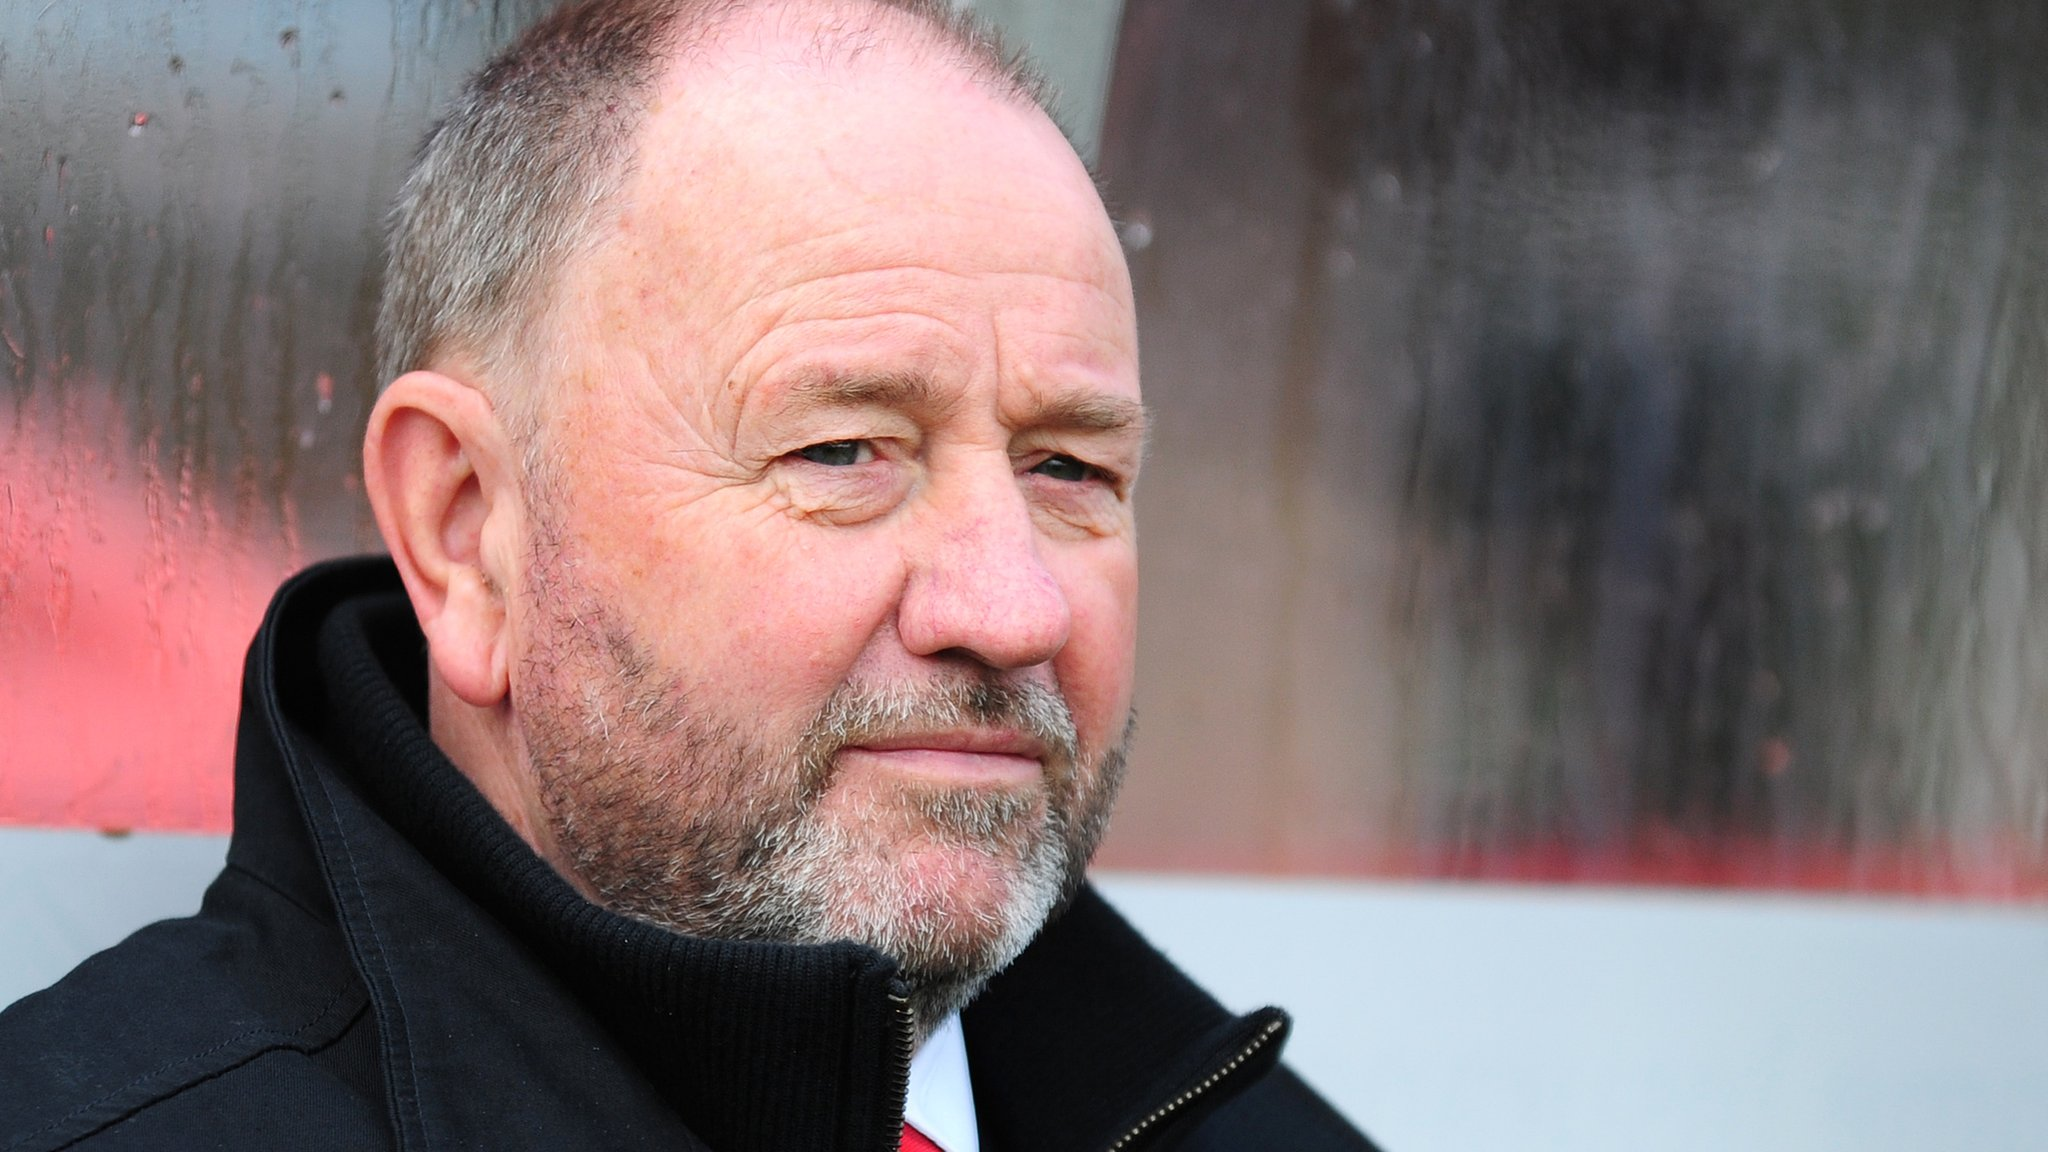 Gary Johnson: Torquay manager laughs off mistaken identity on BBC local radio phone-in